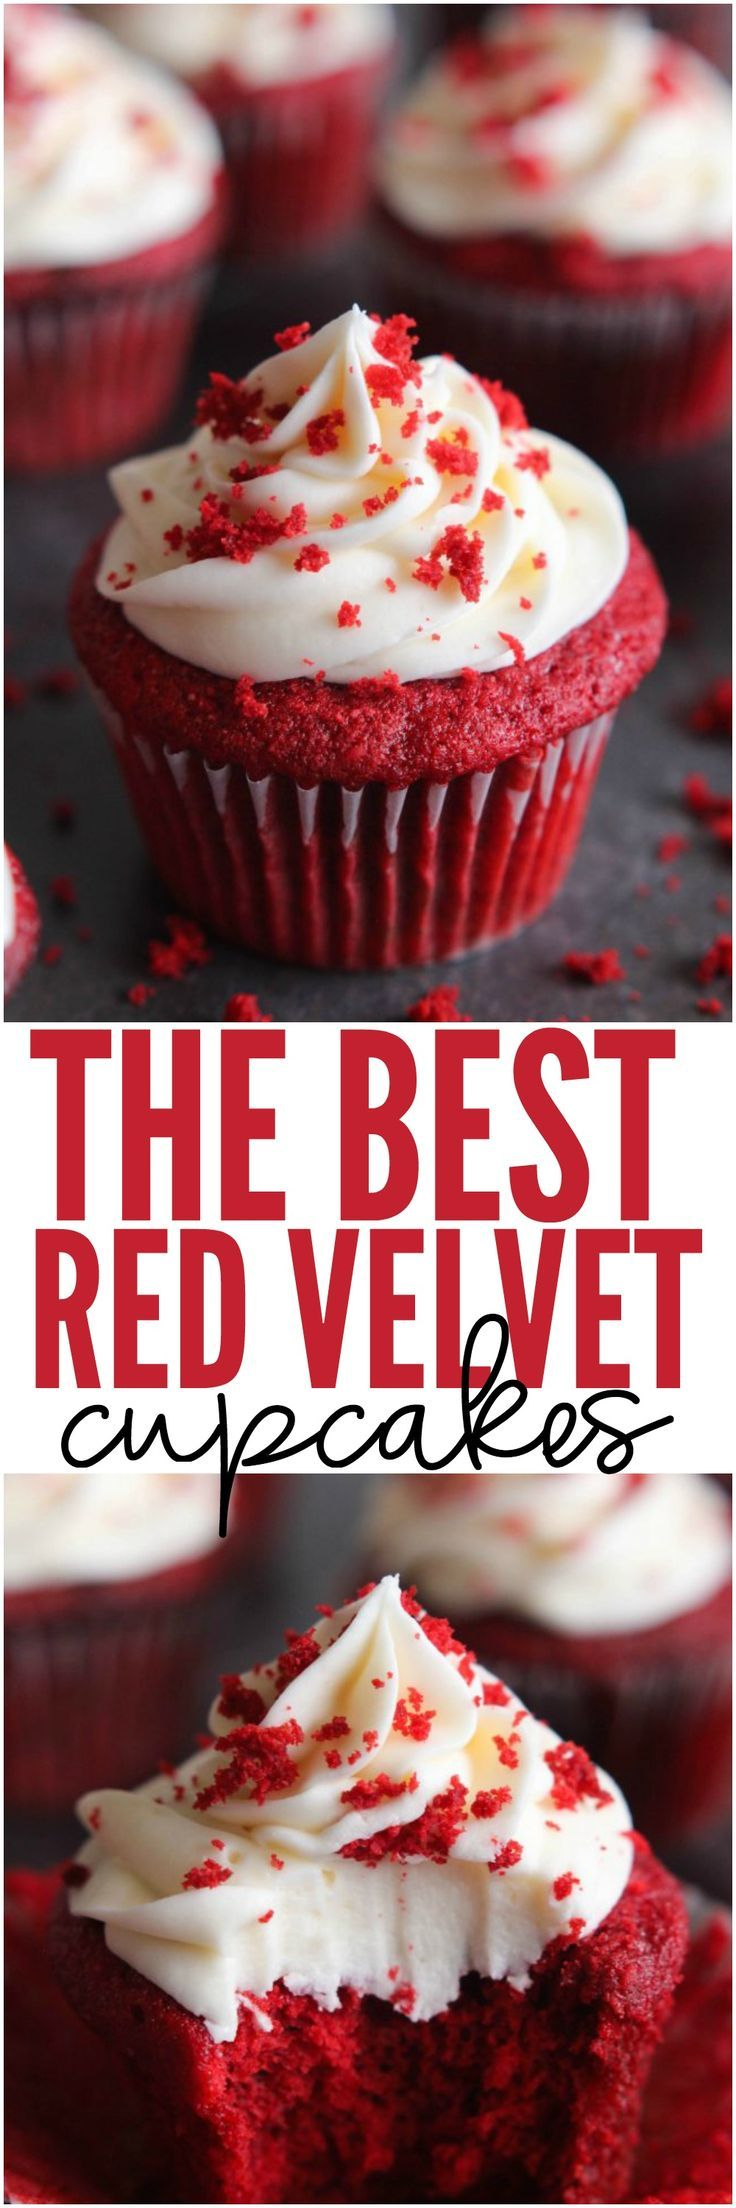 The BEST Red Velvet Cupcakes are a light cake with a beautiful red color and a slight chocolate flavor with a little tang from the buttermilk. They are perfectly moist and topped with cream cheese fro (Chocolate Color Cream Cheeses)